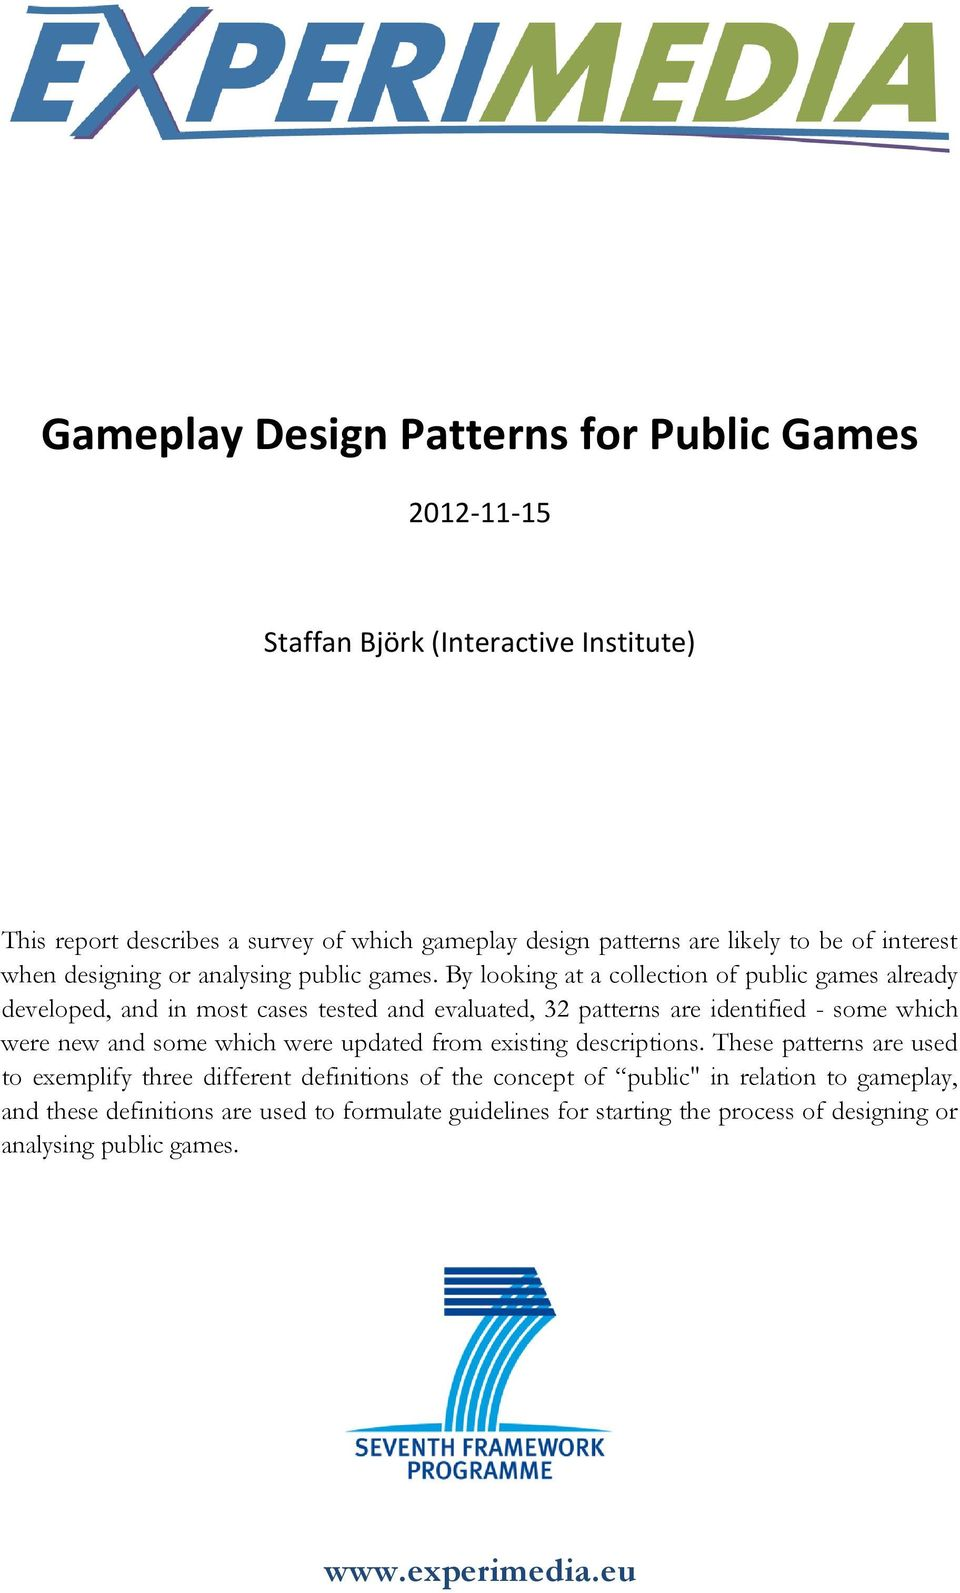 By looking at a collection of public games already developed, and in most cases tested and evaluated, 32 patterns are identified some which were new and some which were